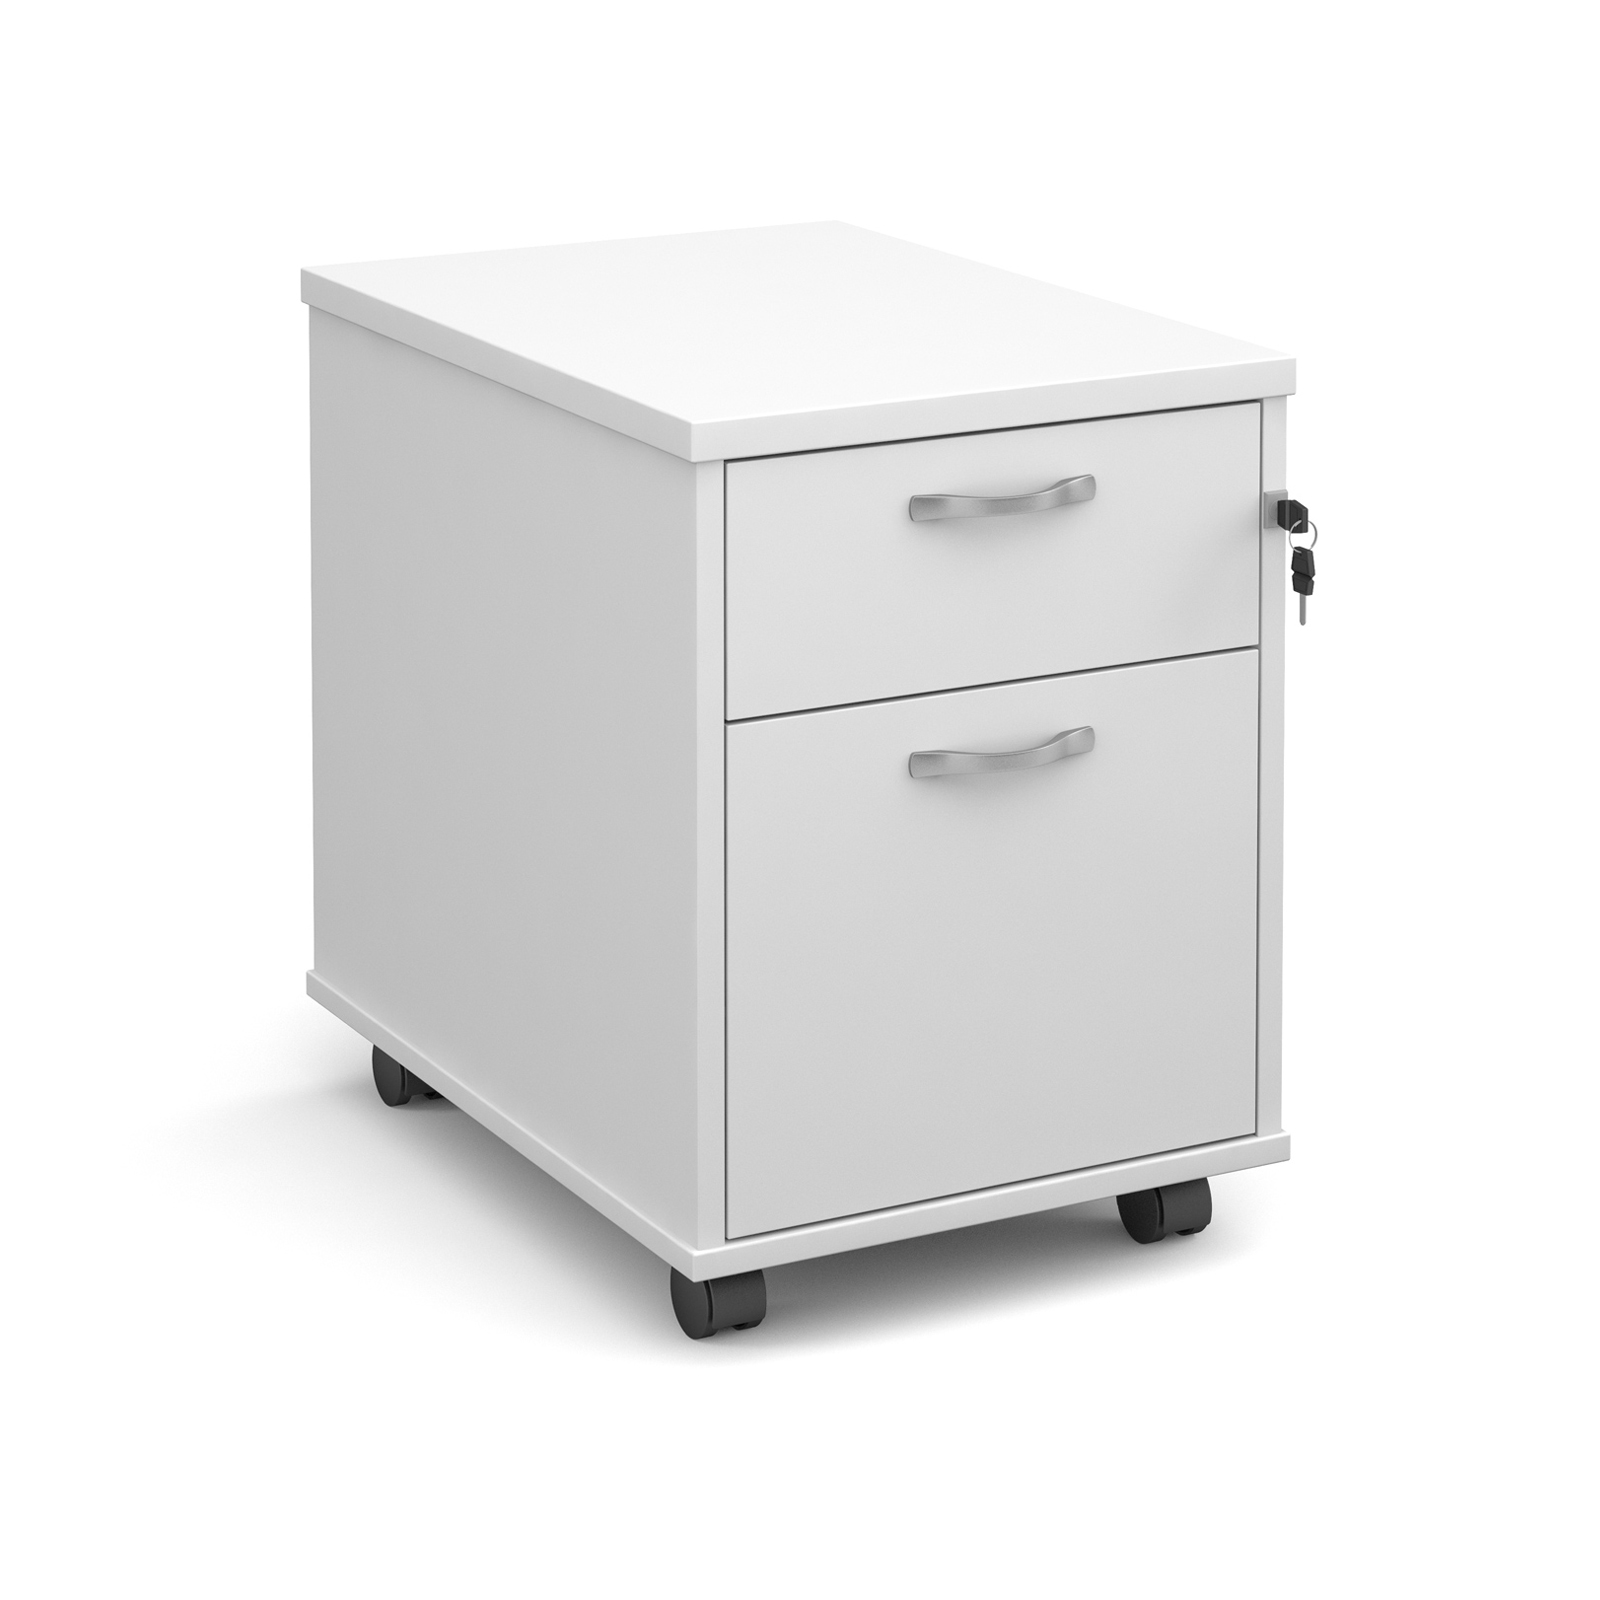 2 Drawer Mobile 2 drawer pedestal with silver handles 600mm deep - white